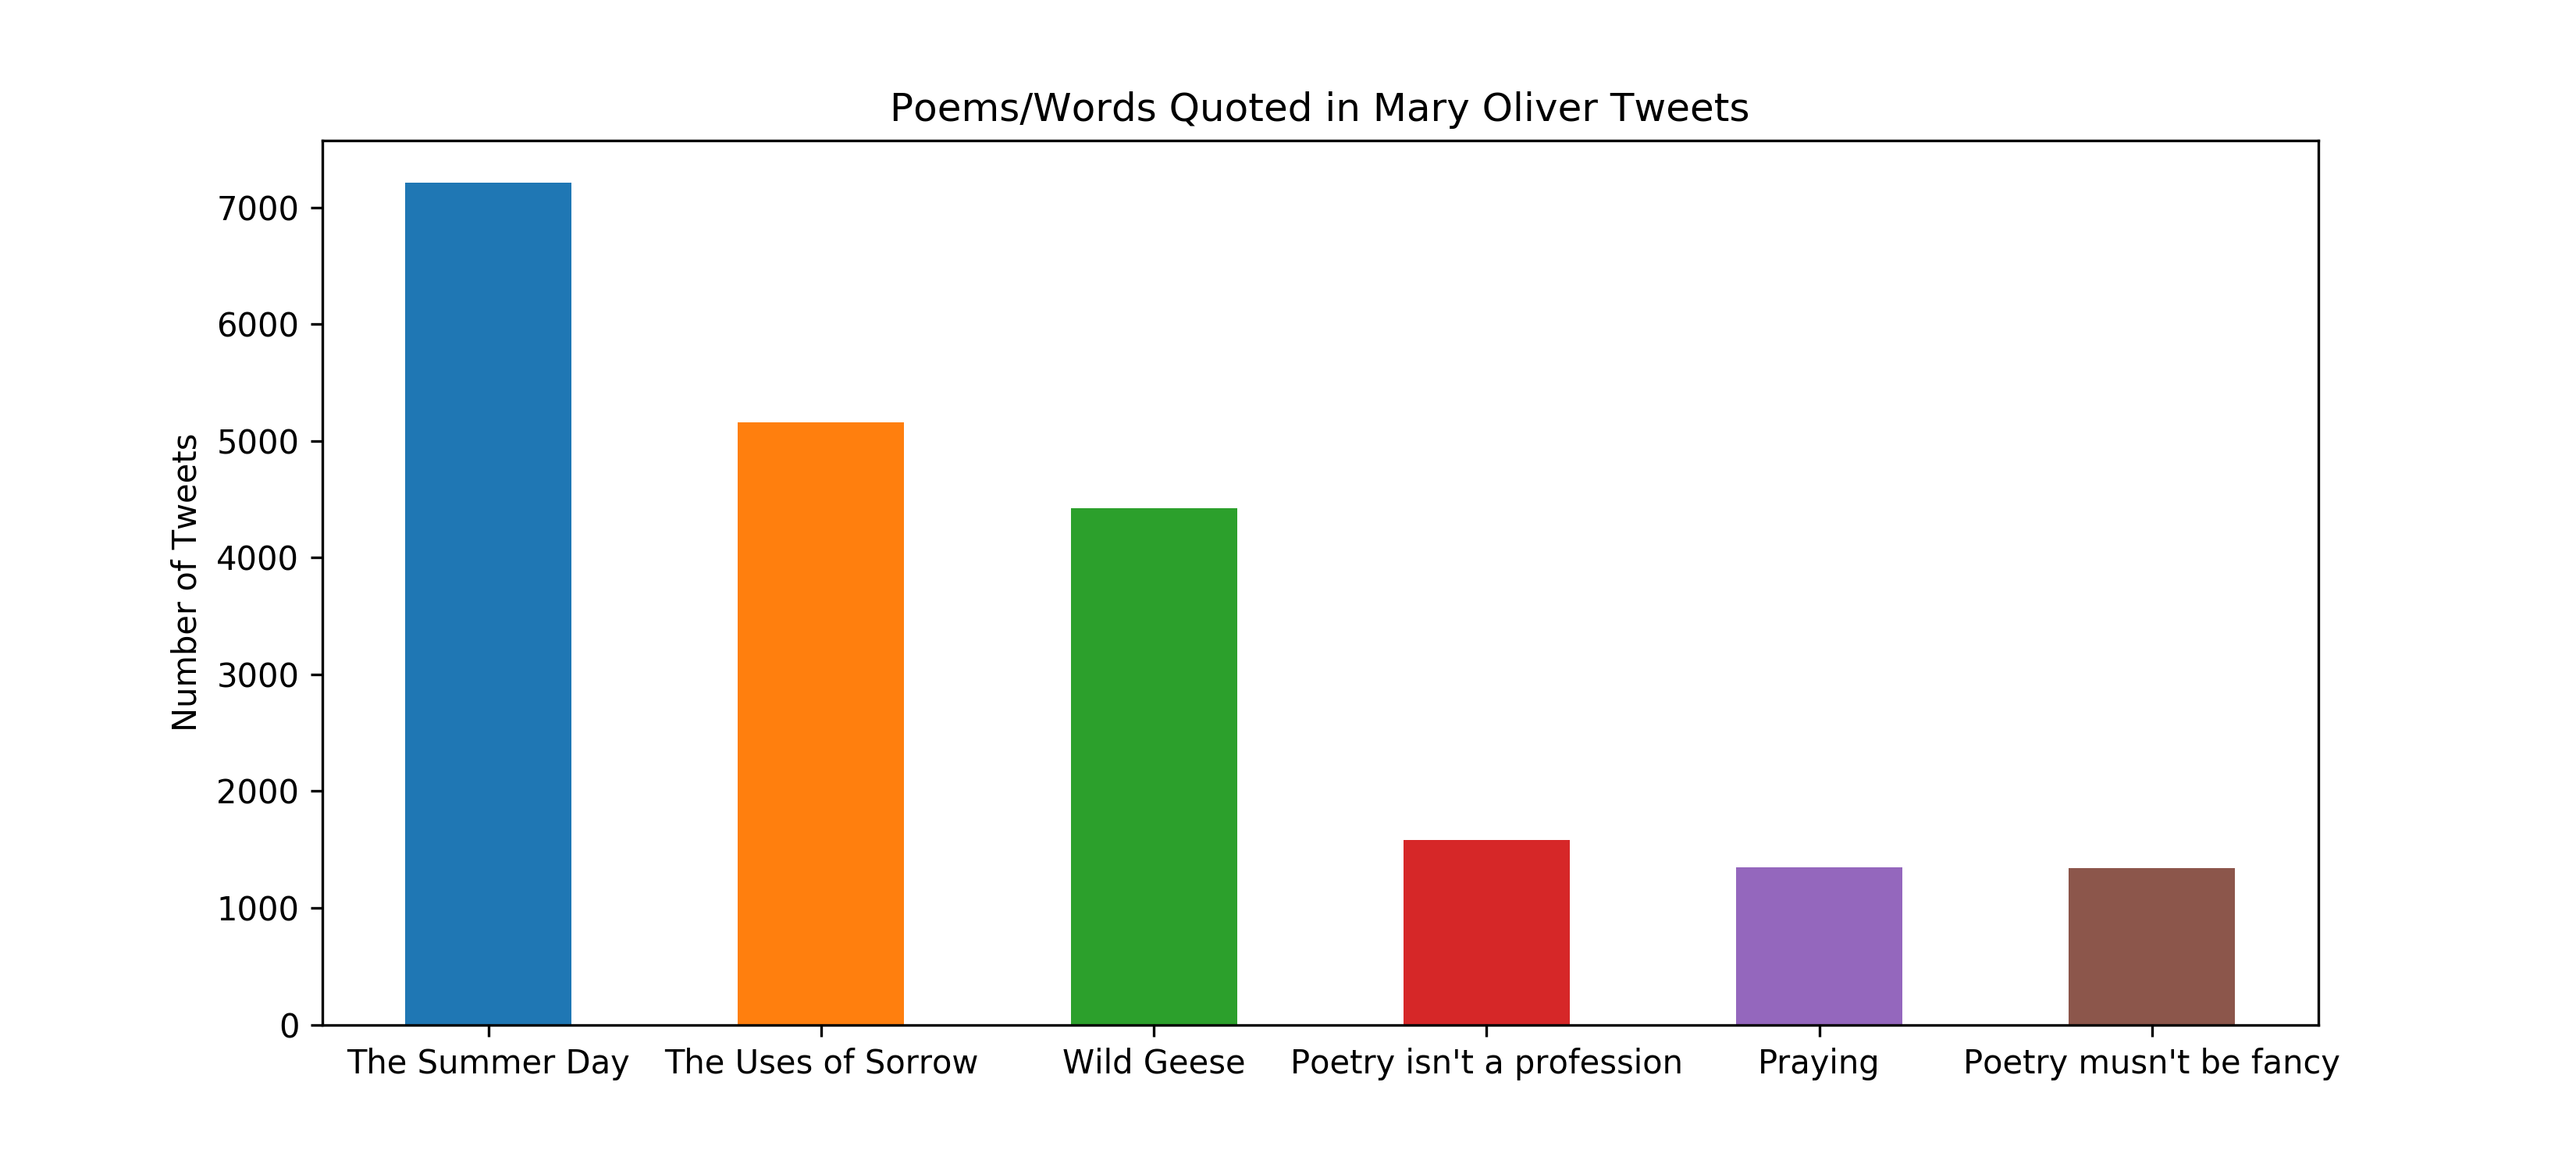 Poems/Words Quoted in Mary Oliver Tweets